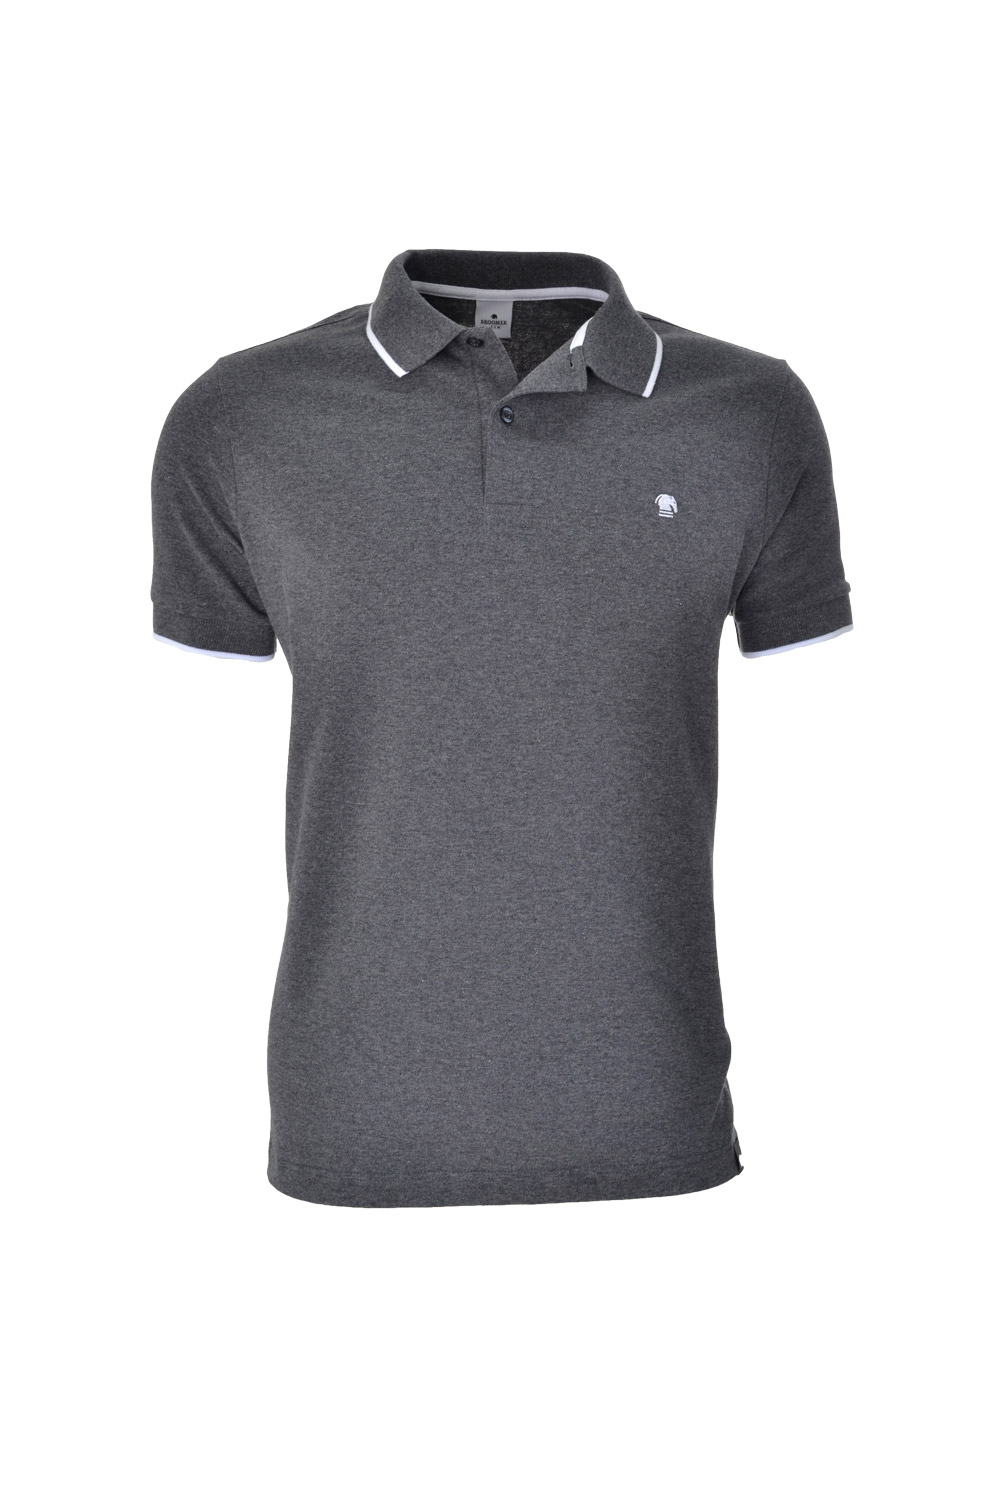 POLO MC CASUAL SLIM ALGODAO & ELASTANO STRETCH PIQUET CINZA ESCURO